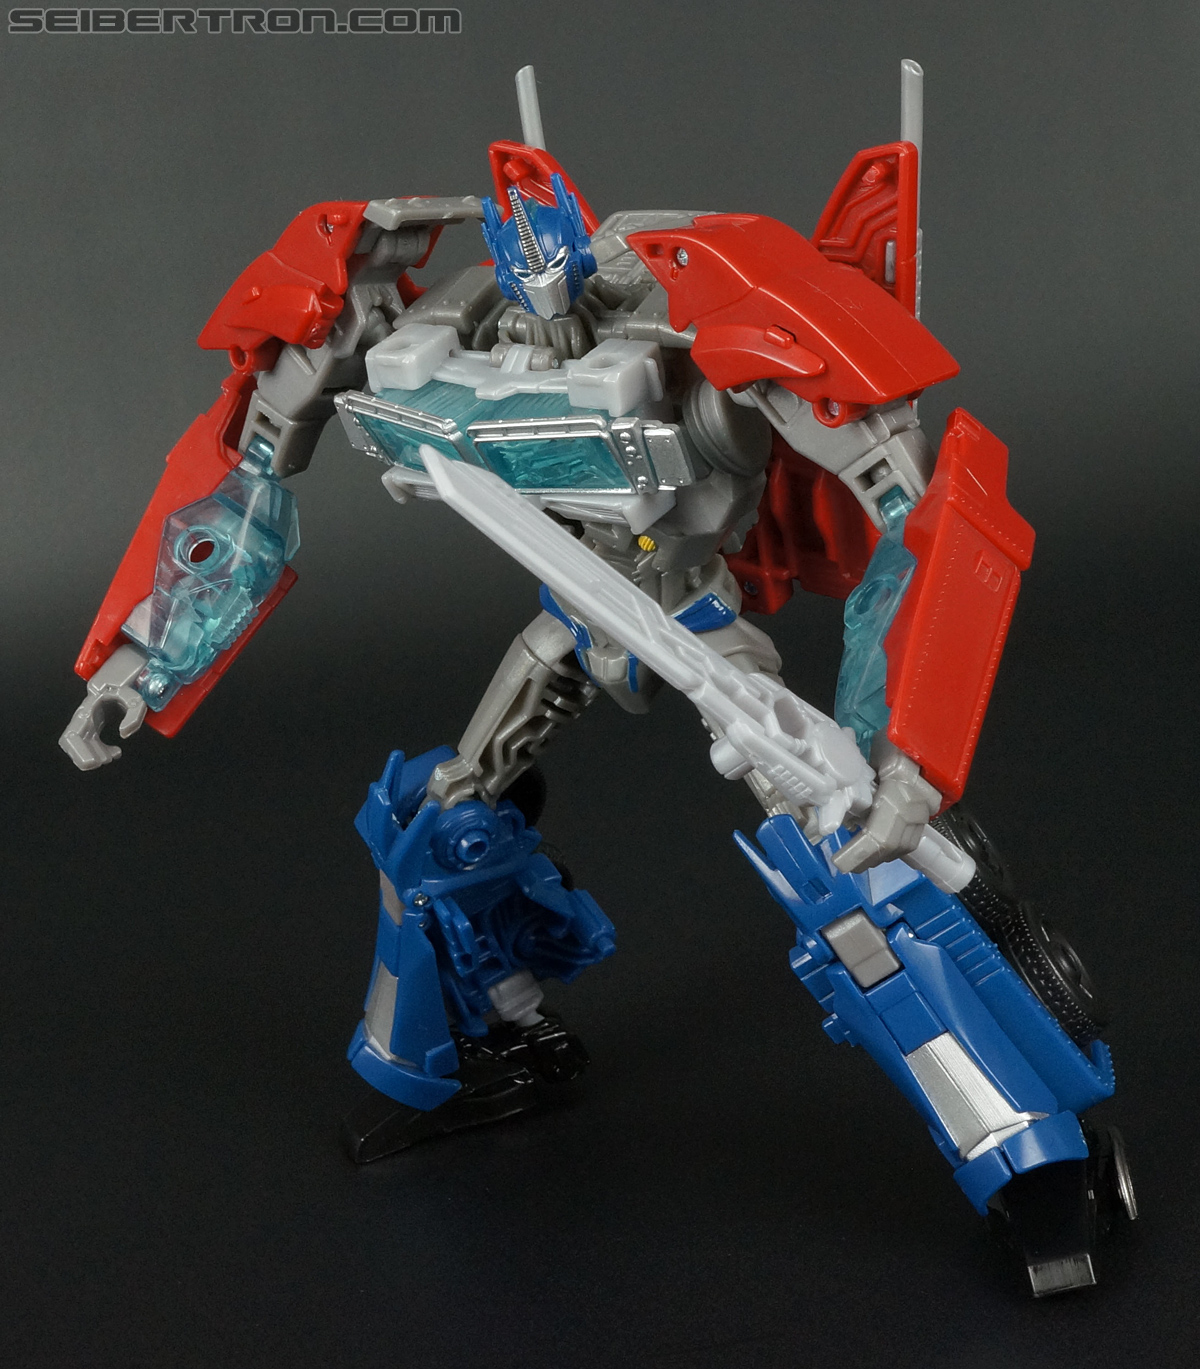 Transformers Prime: Robots In Disguise Optimus Prime (Image #111 of 176)